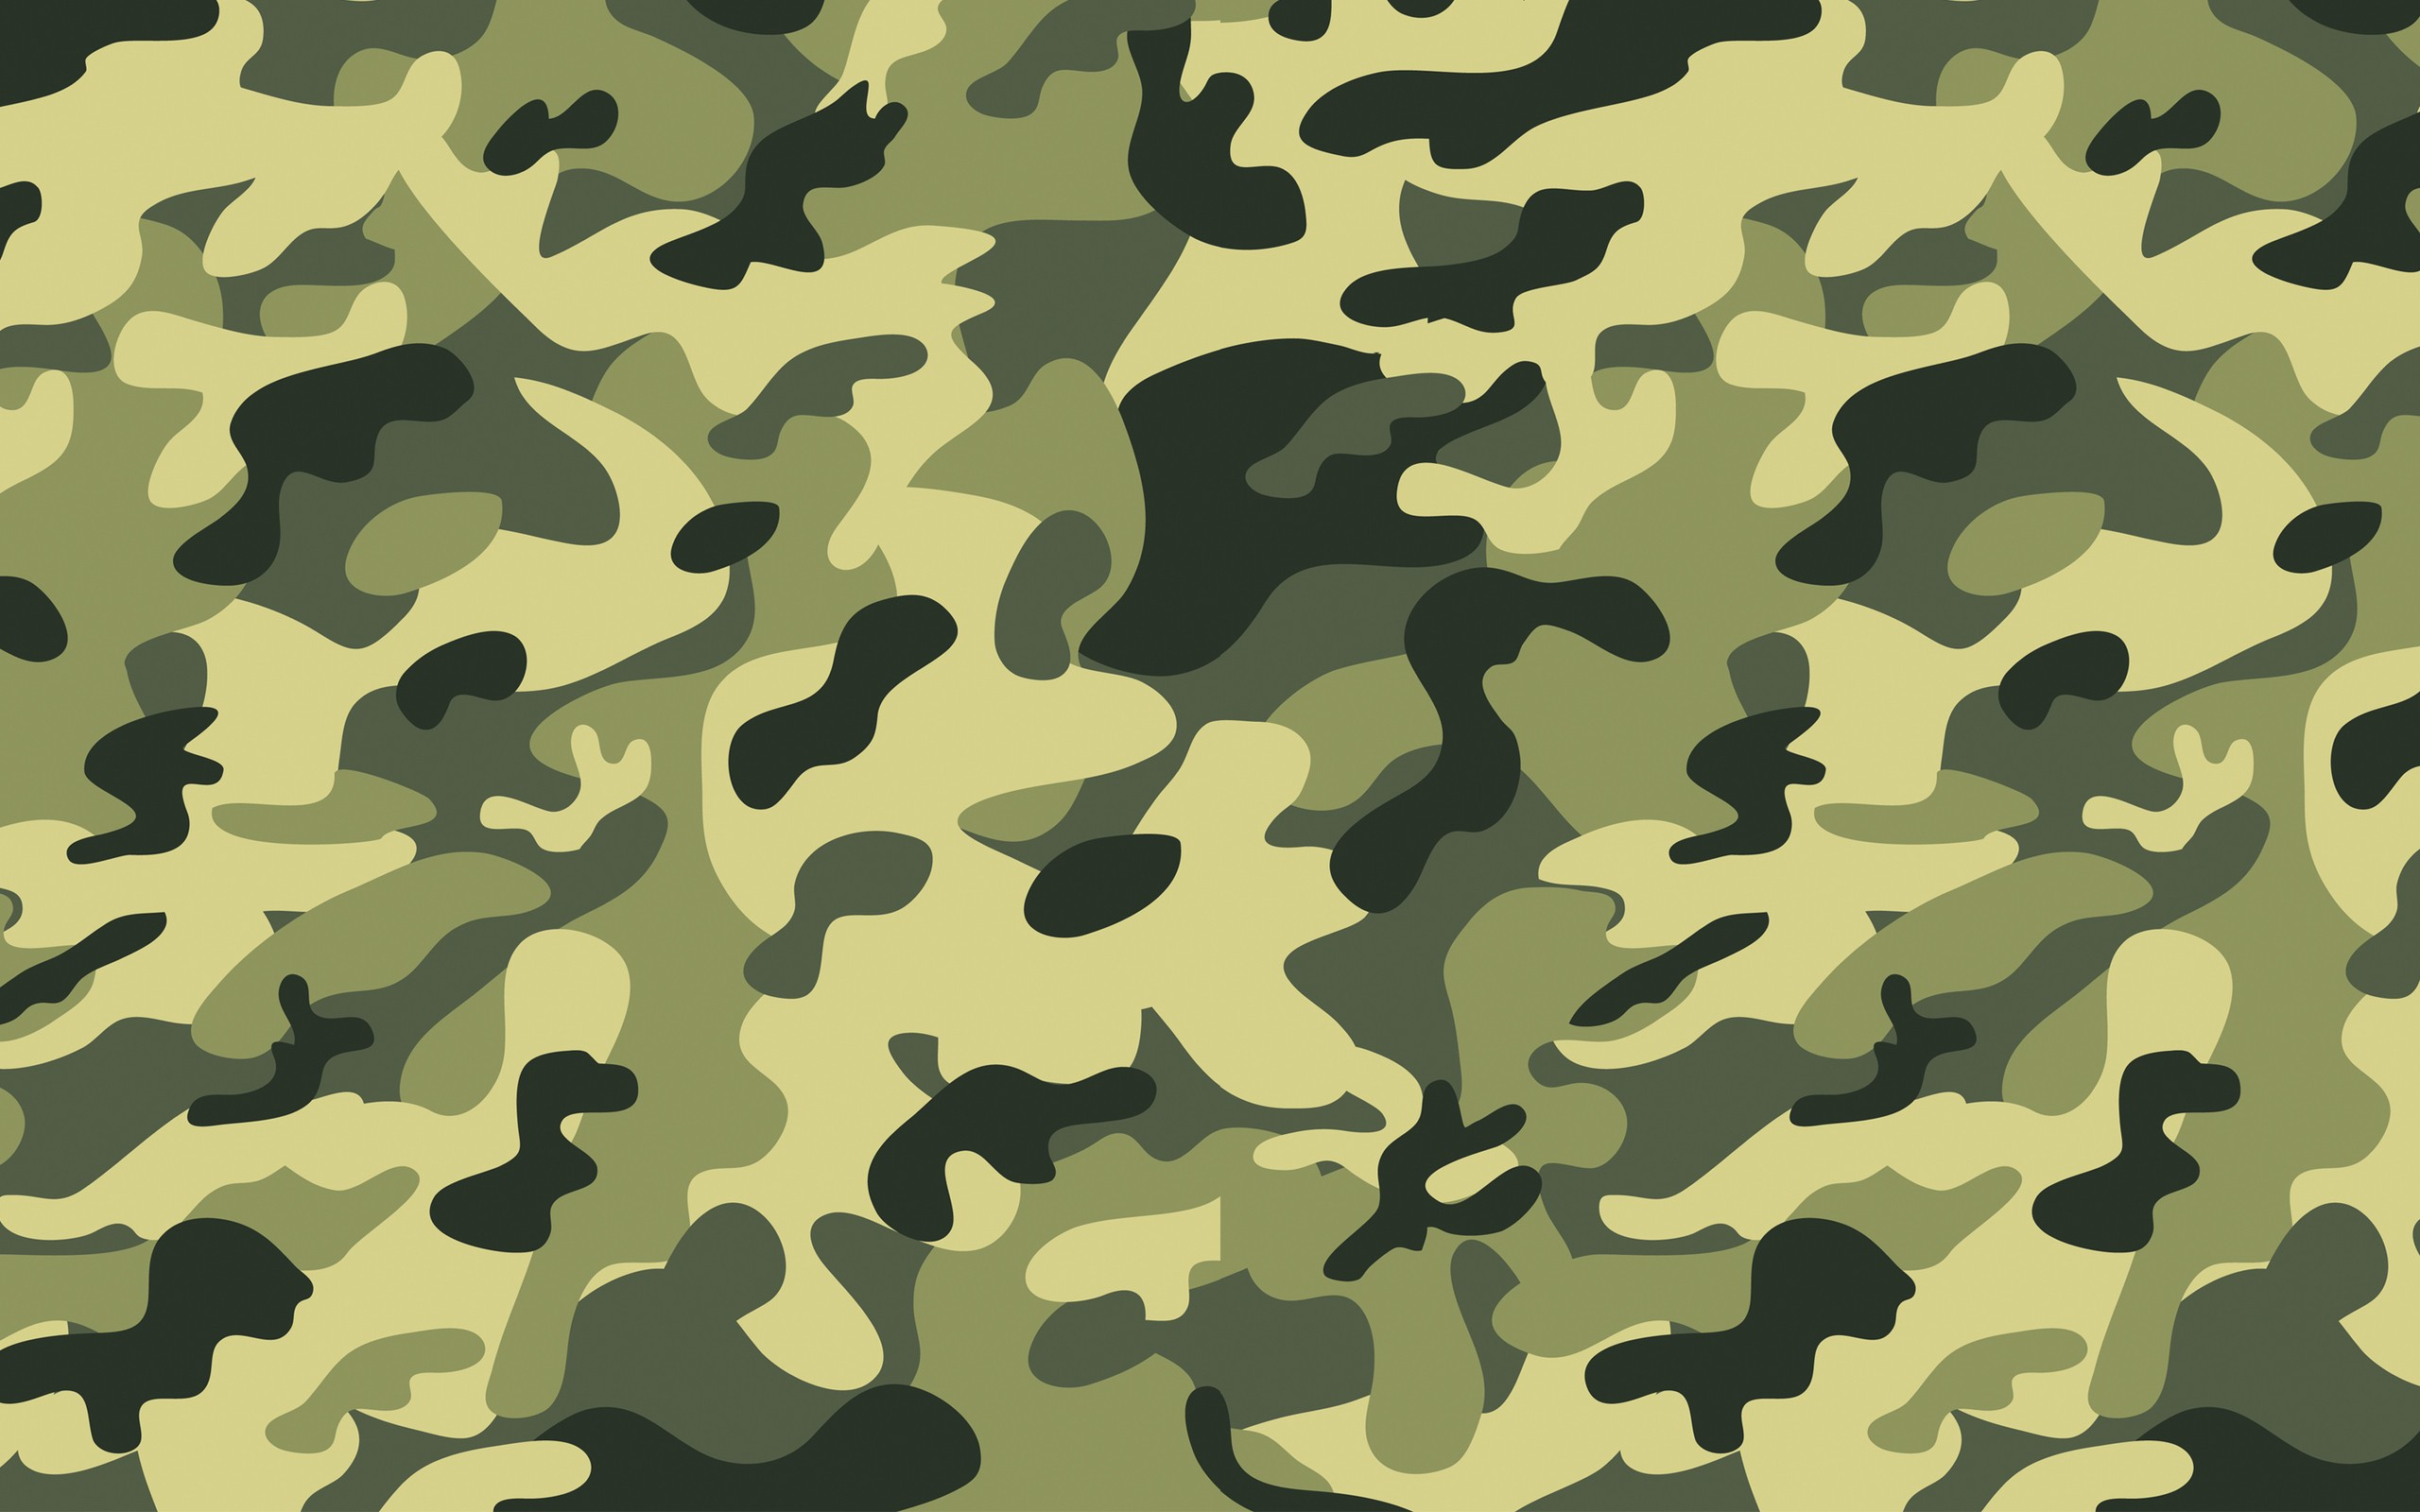 minimalistic military camouflage backgrounds wallpaper background 2560x1600